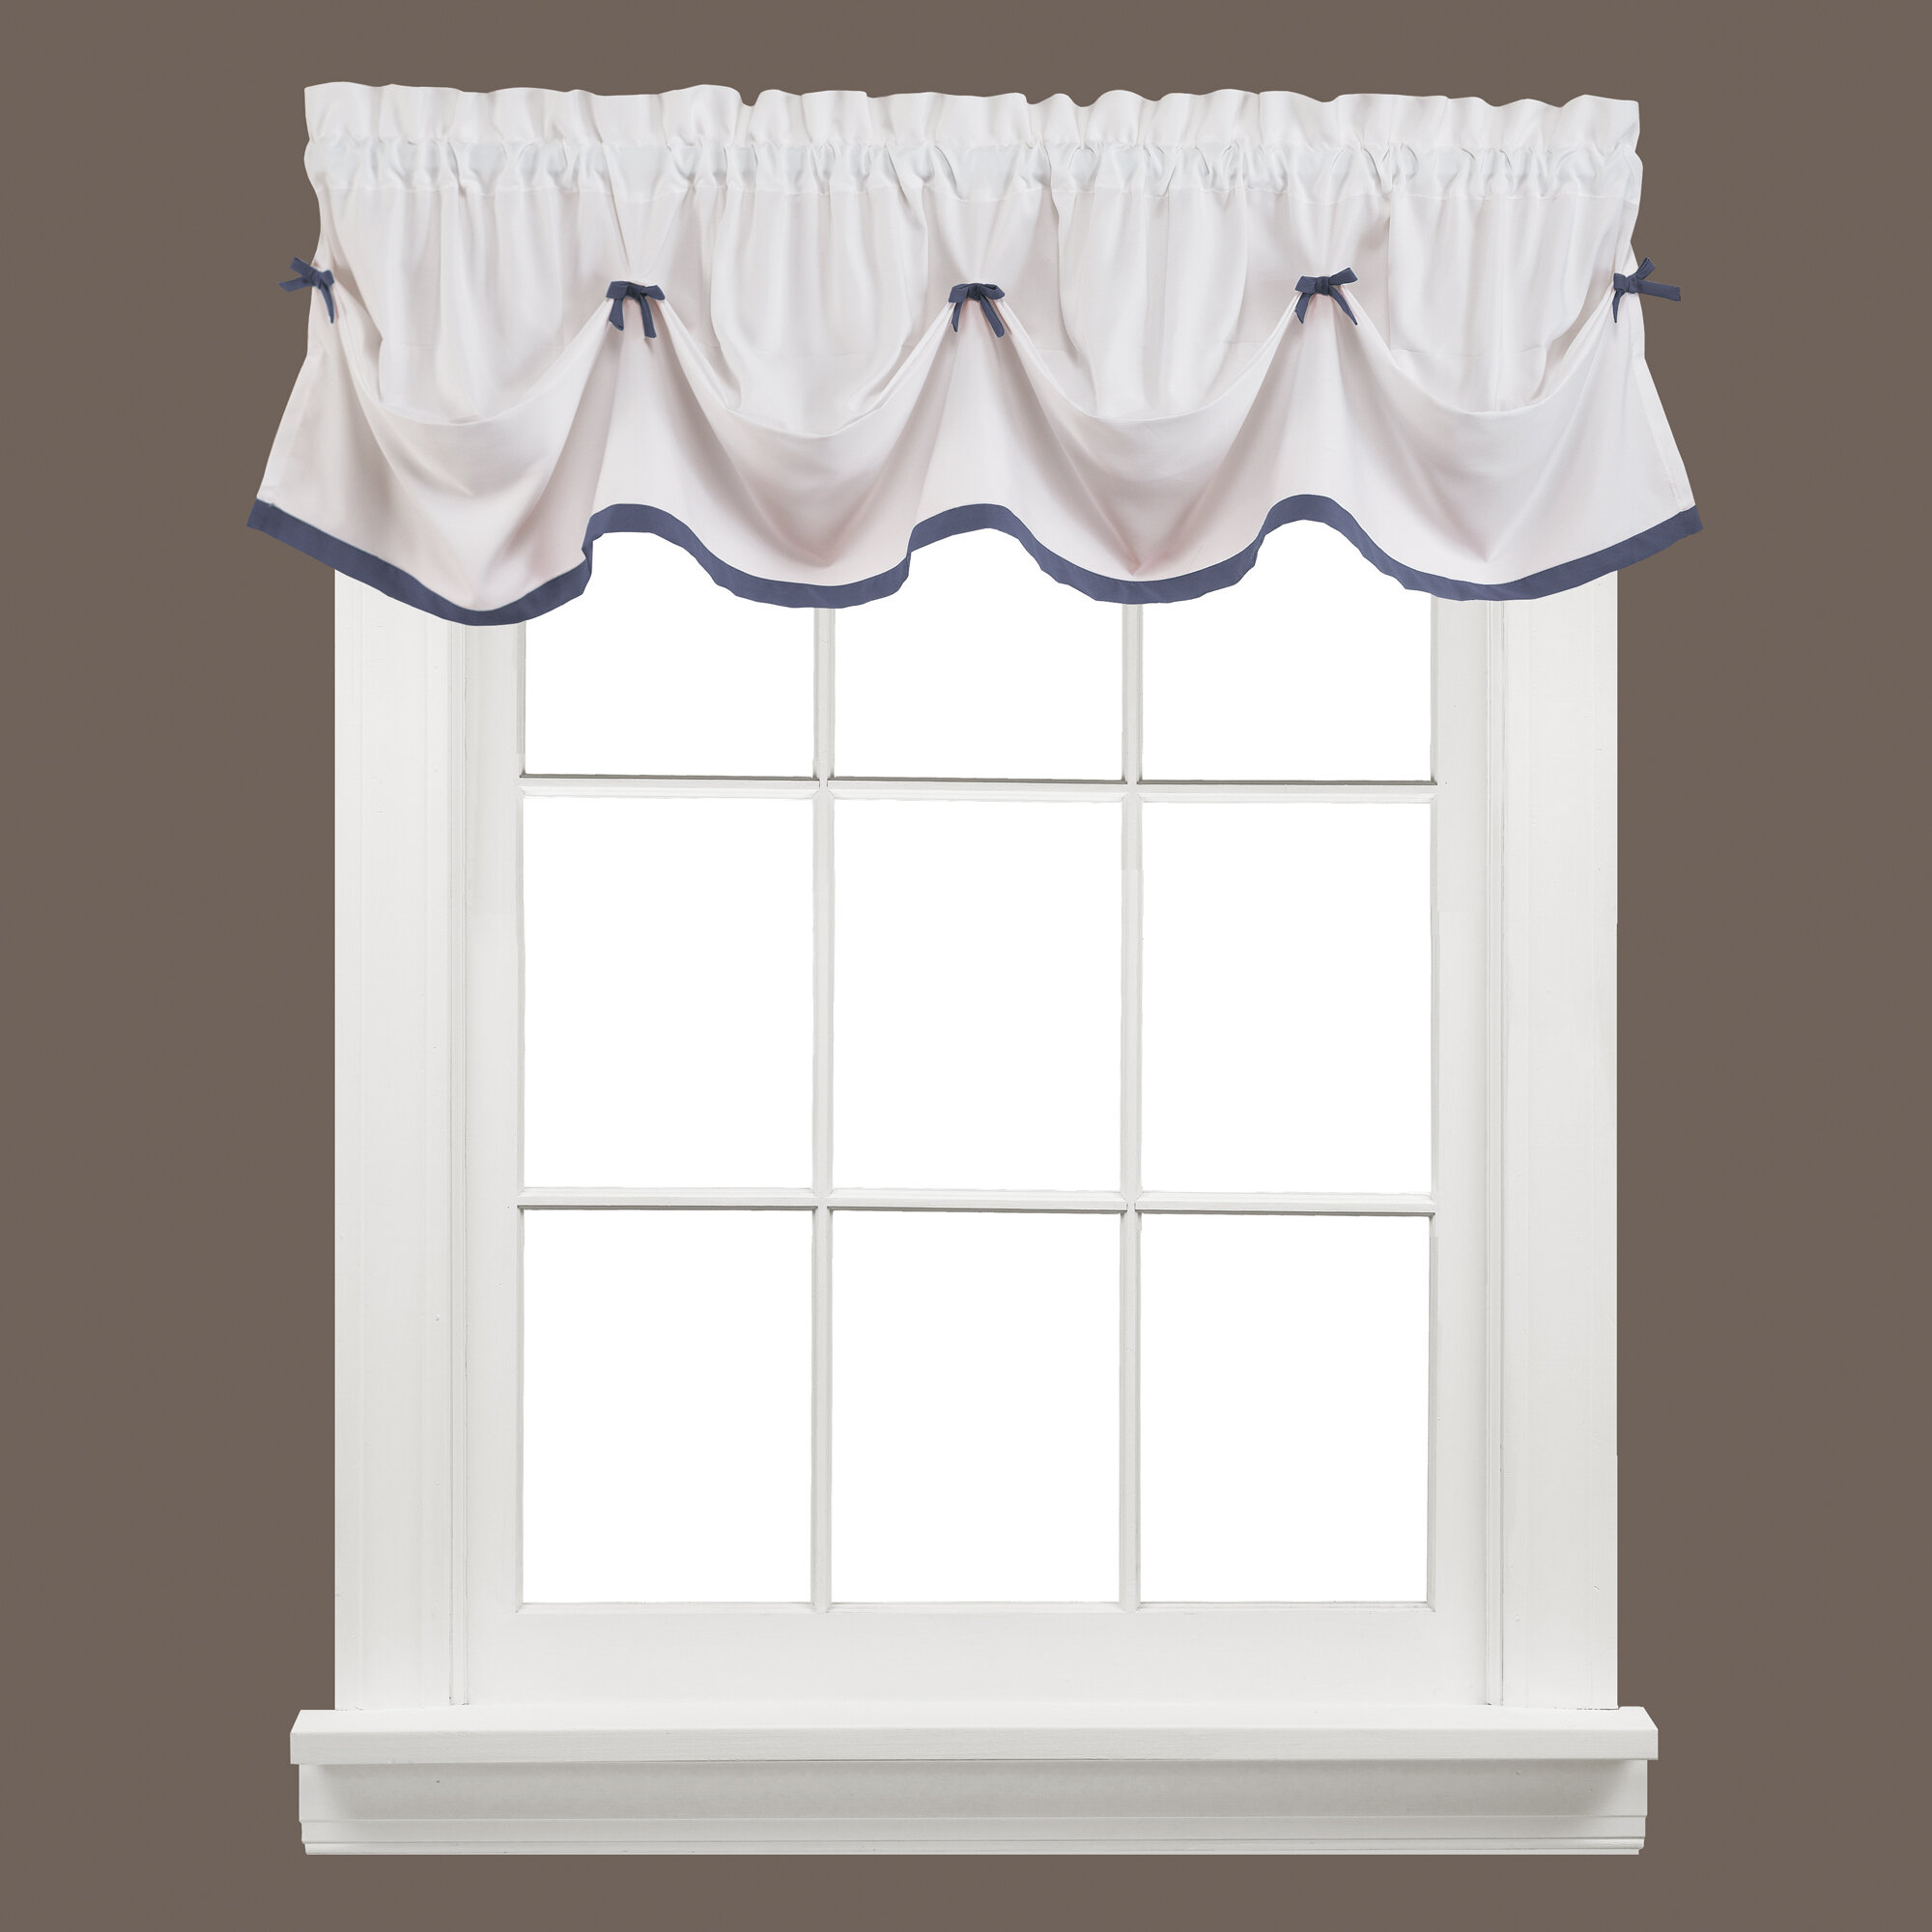 custom two and curtain blue burgundy kitchen tiers drapes buy shades cafe window where tier valances to decoration curtains valance blinds light teal